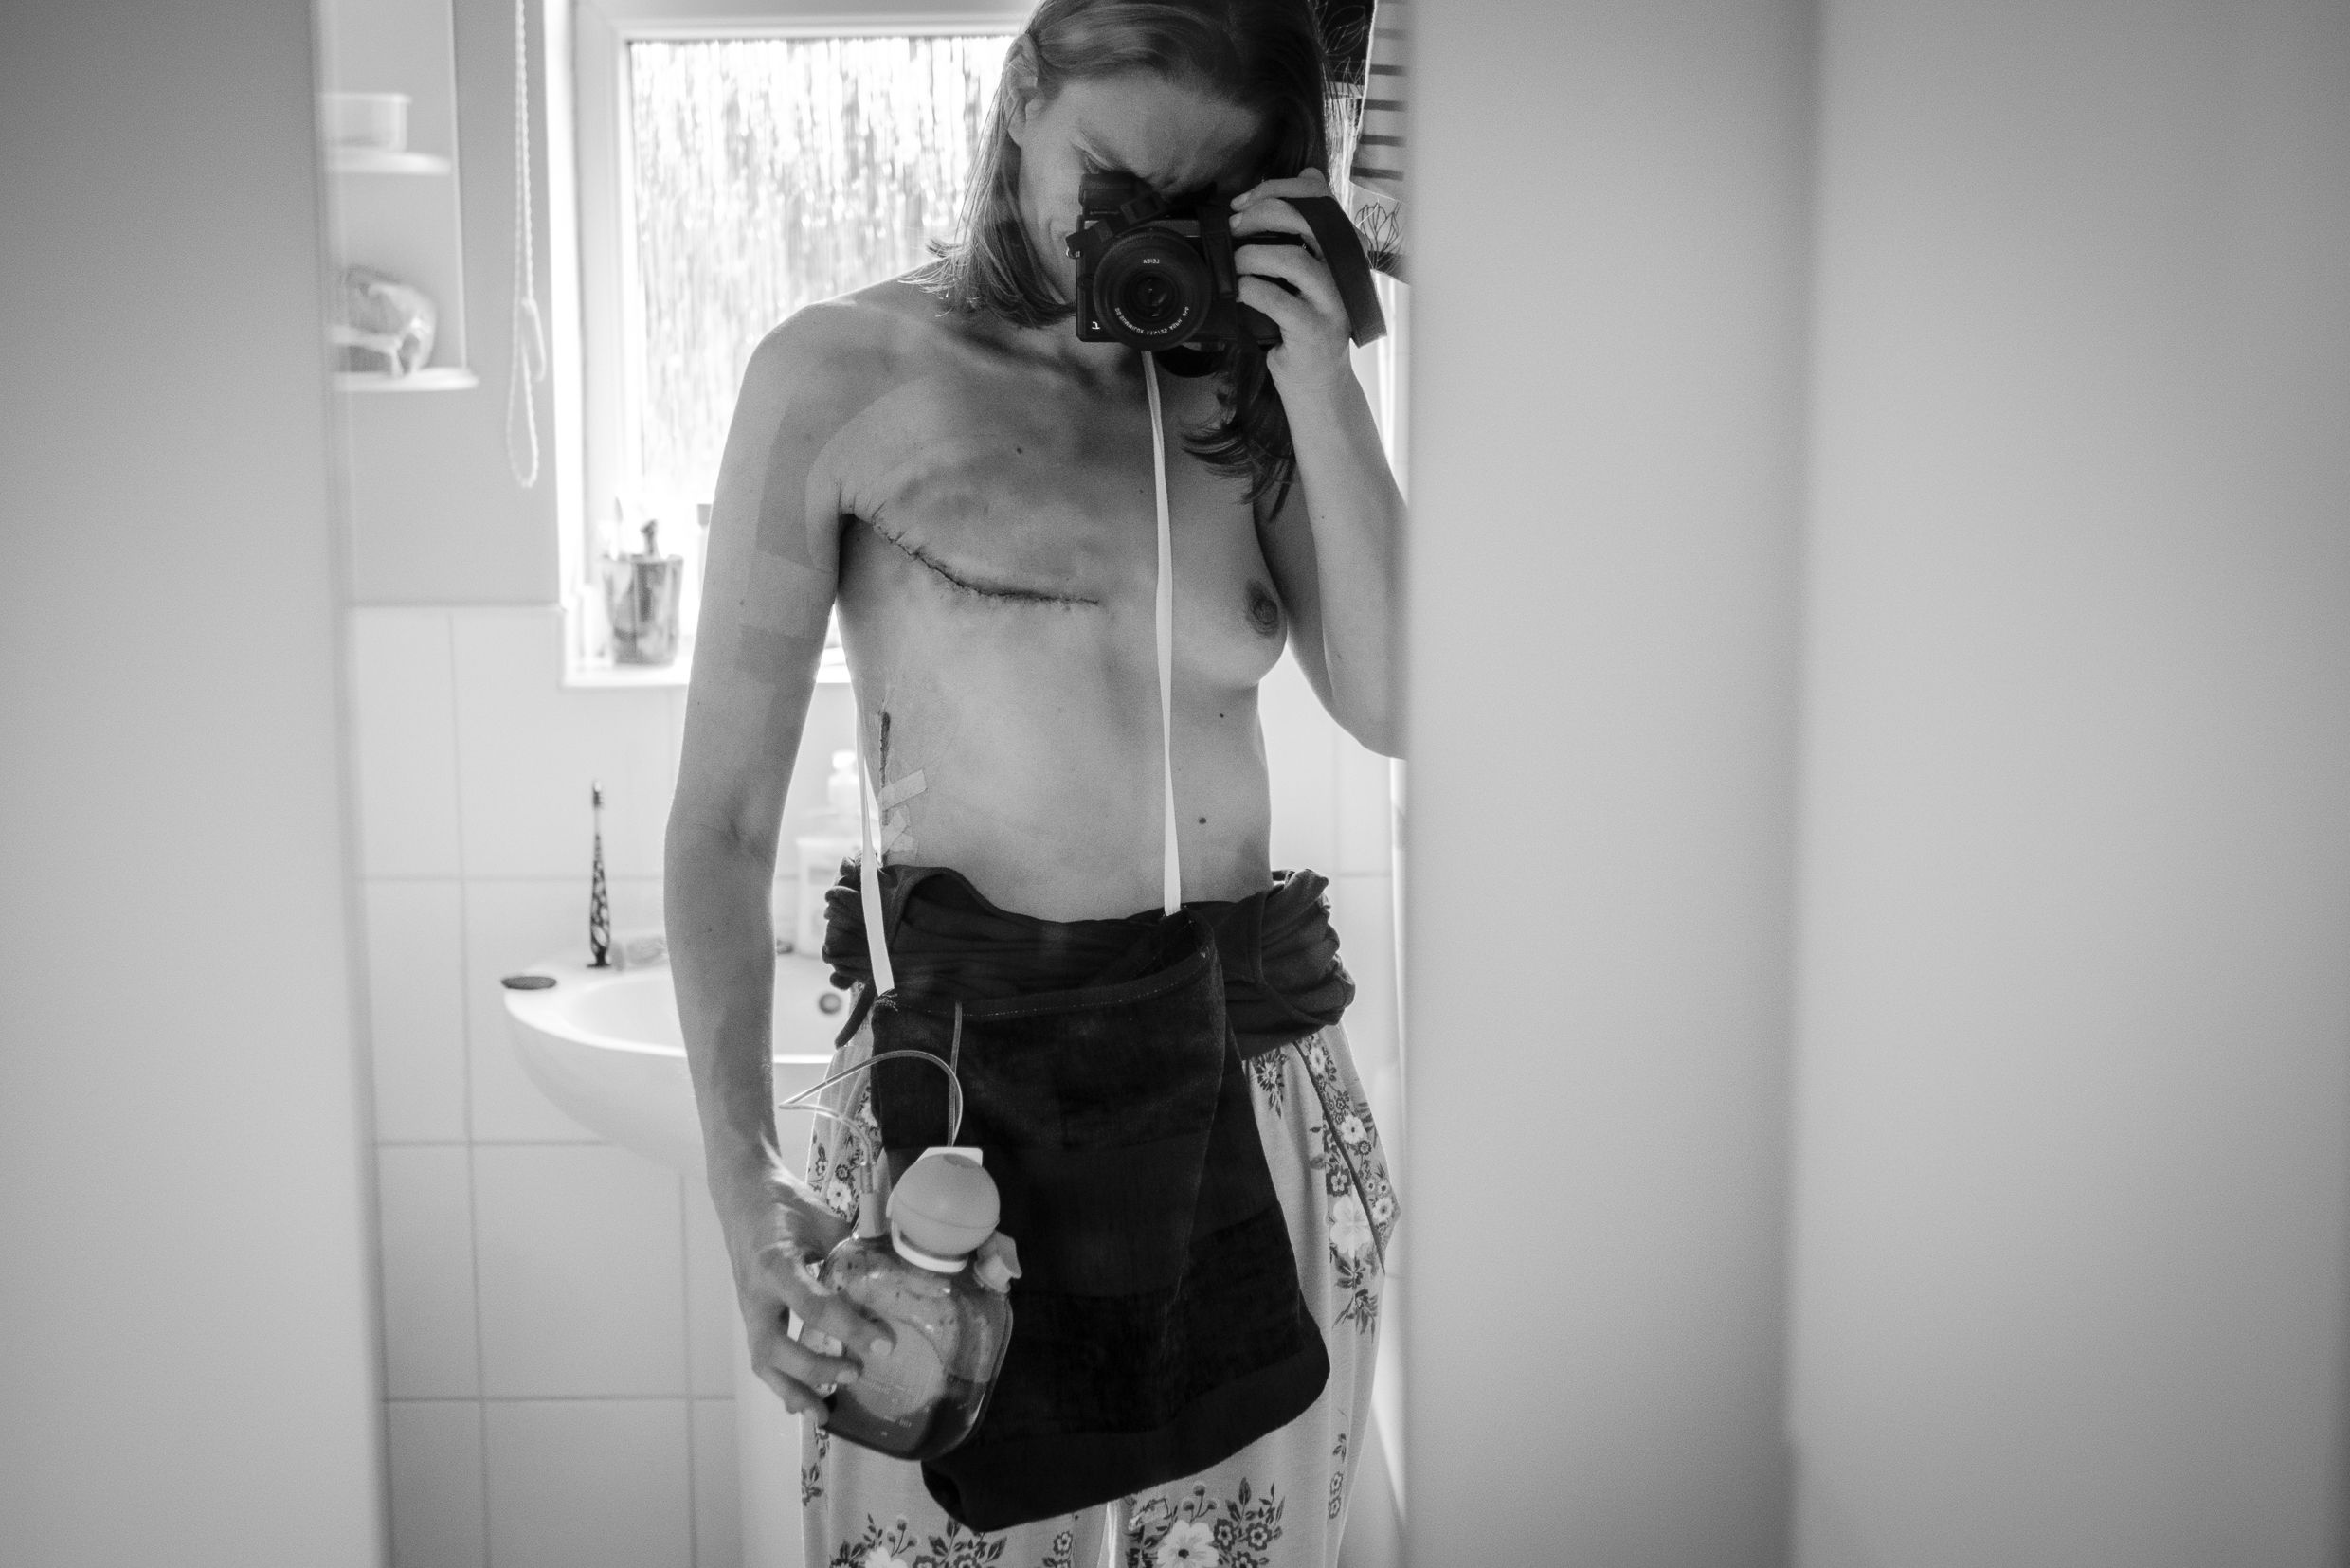 This breast cancer survivor documented her illness with a series of powerful photographs